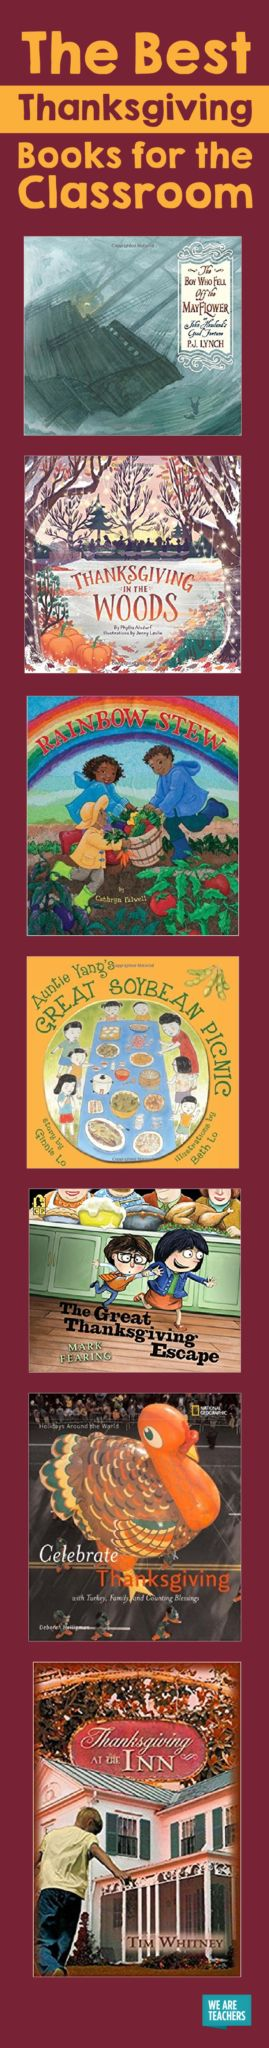 18 Great Thanksgiving Books for Kids and Classrooms